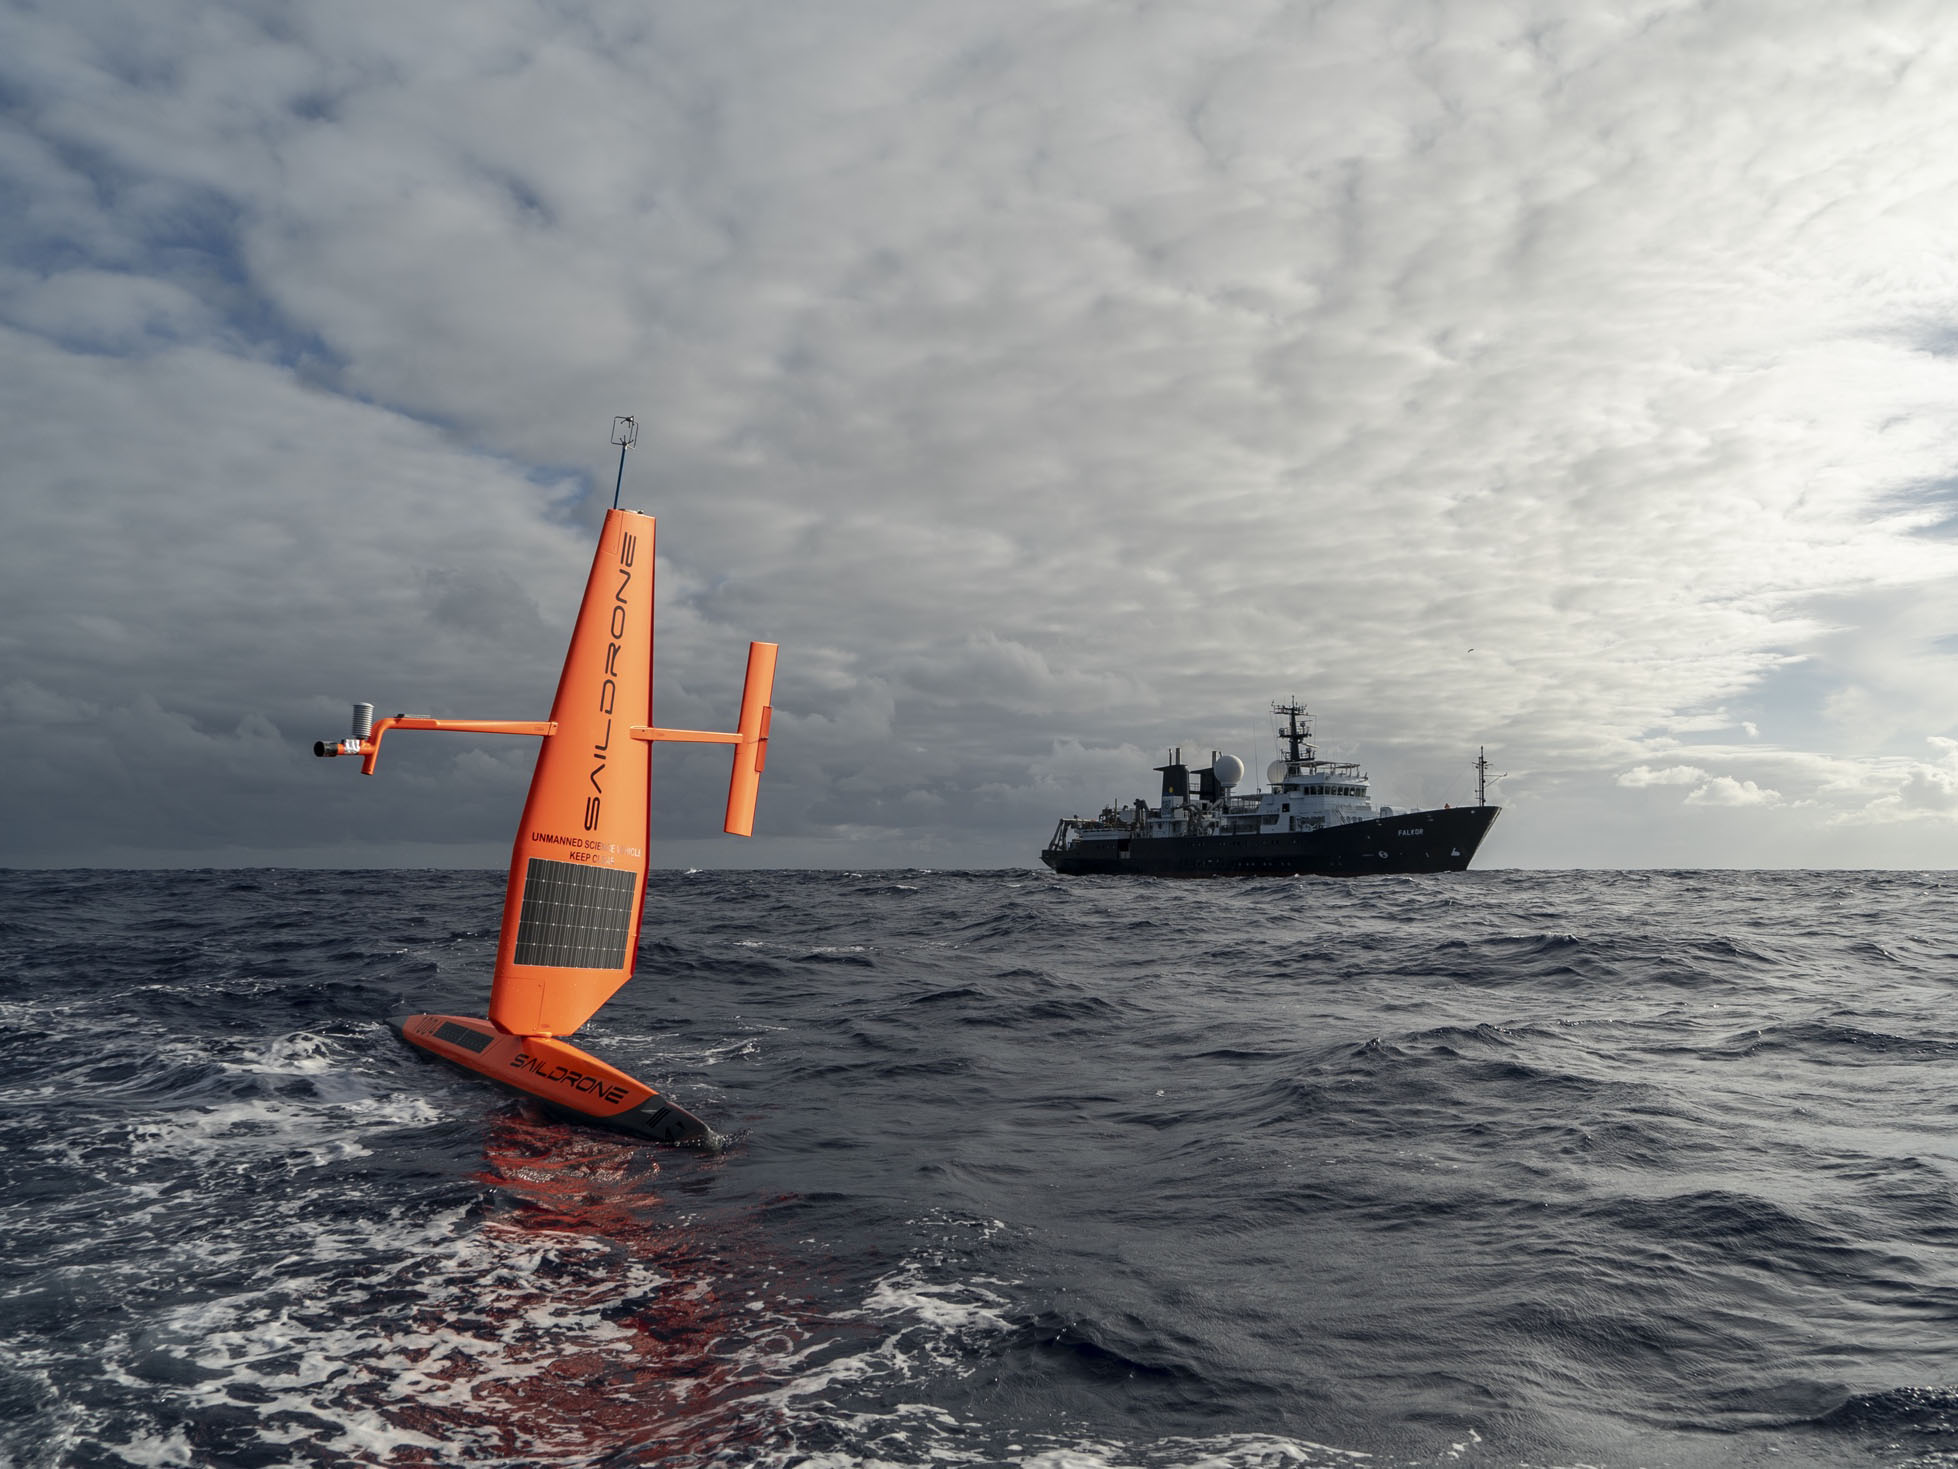 Saildrone USV with Schmidt Ocean Institute RV Falkor